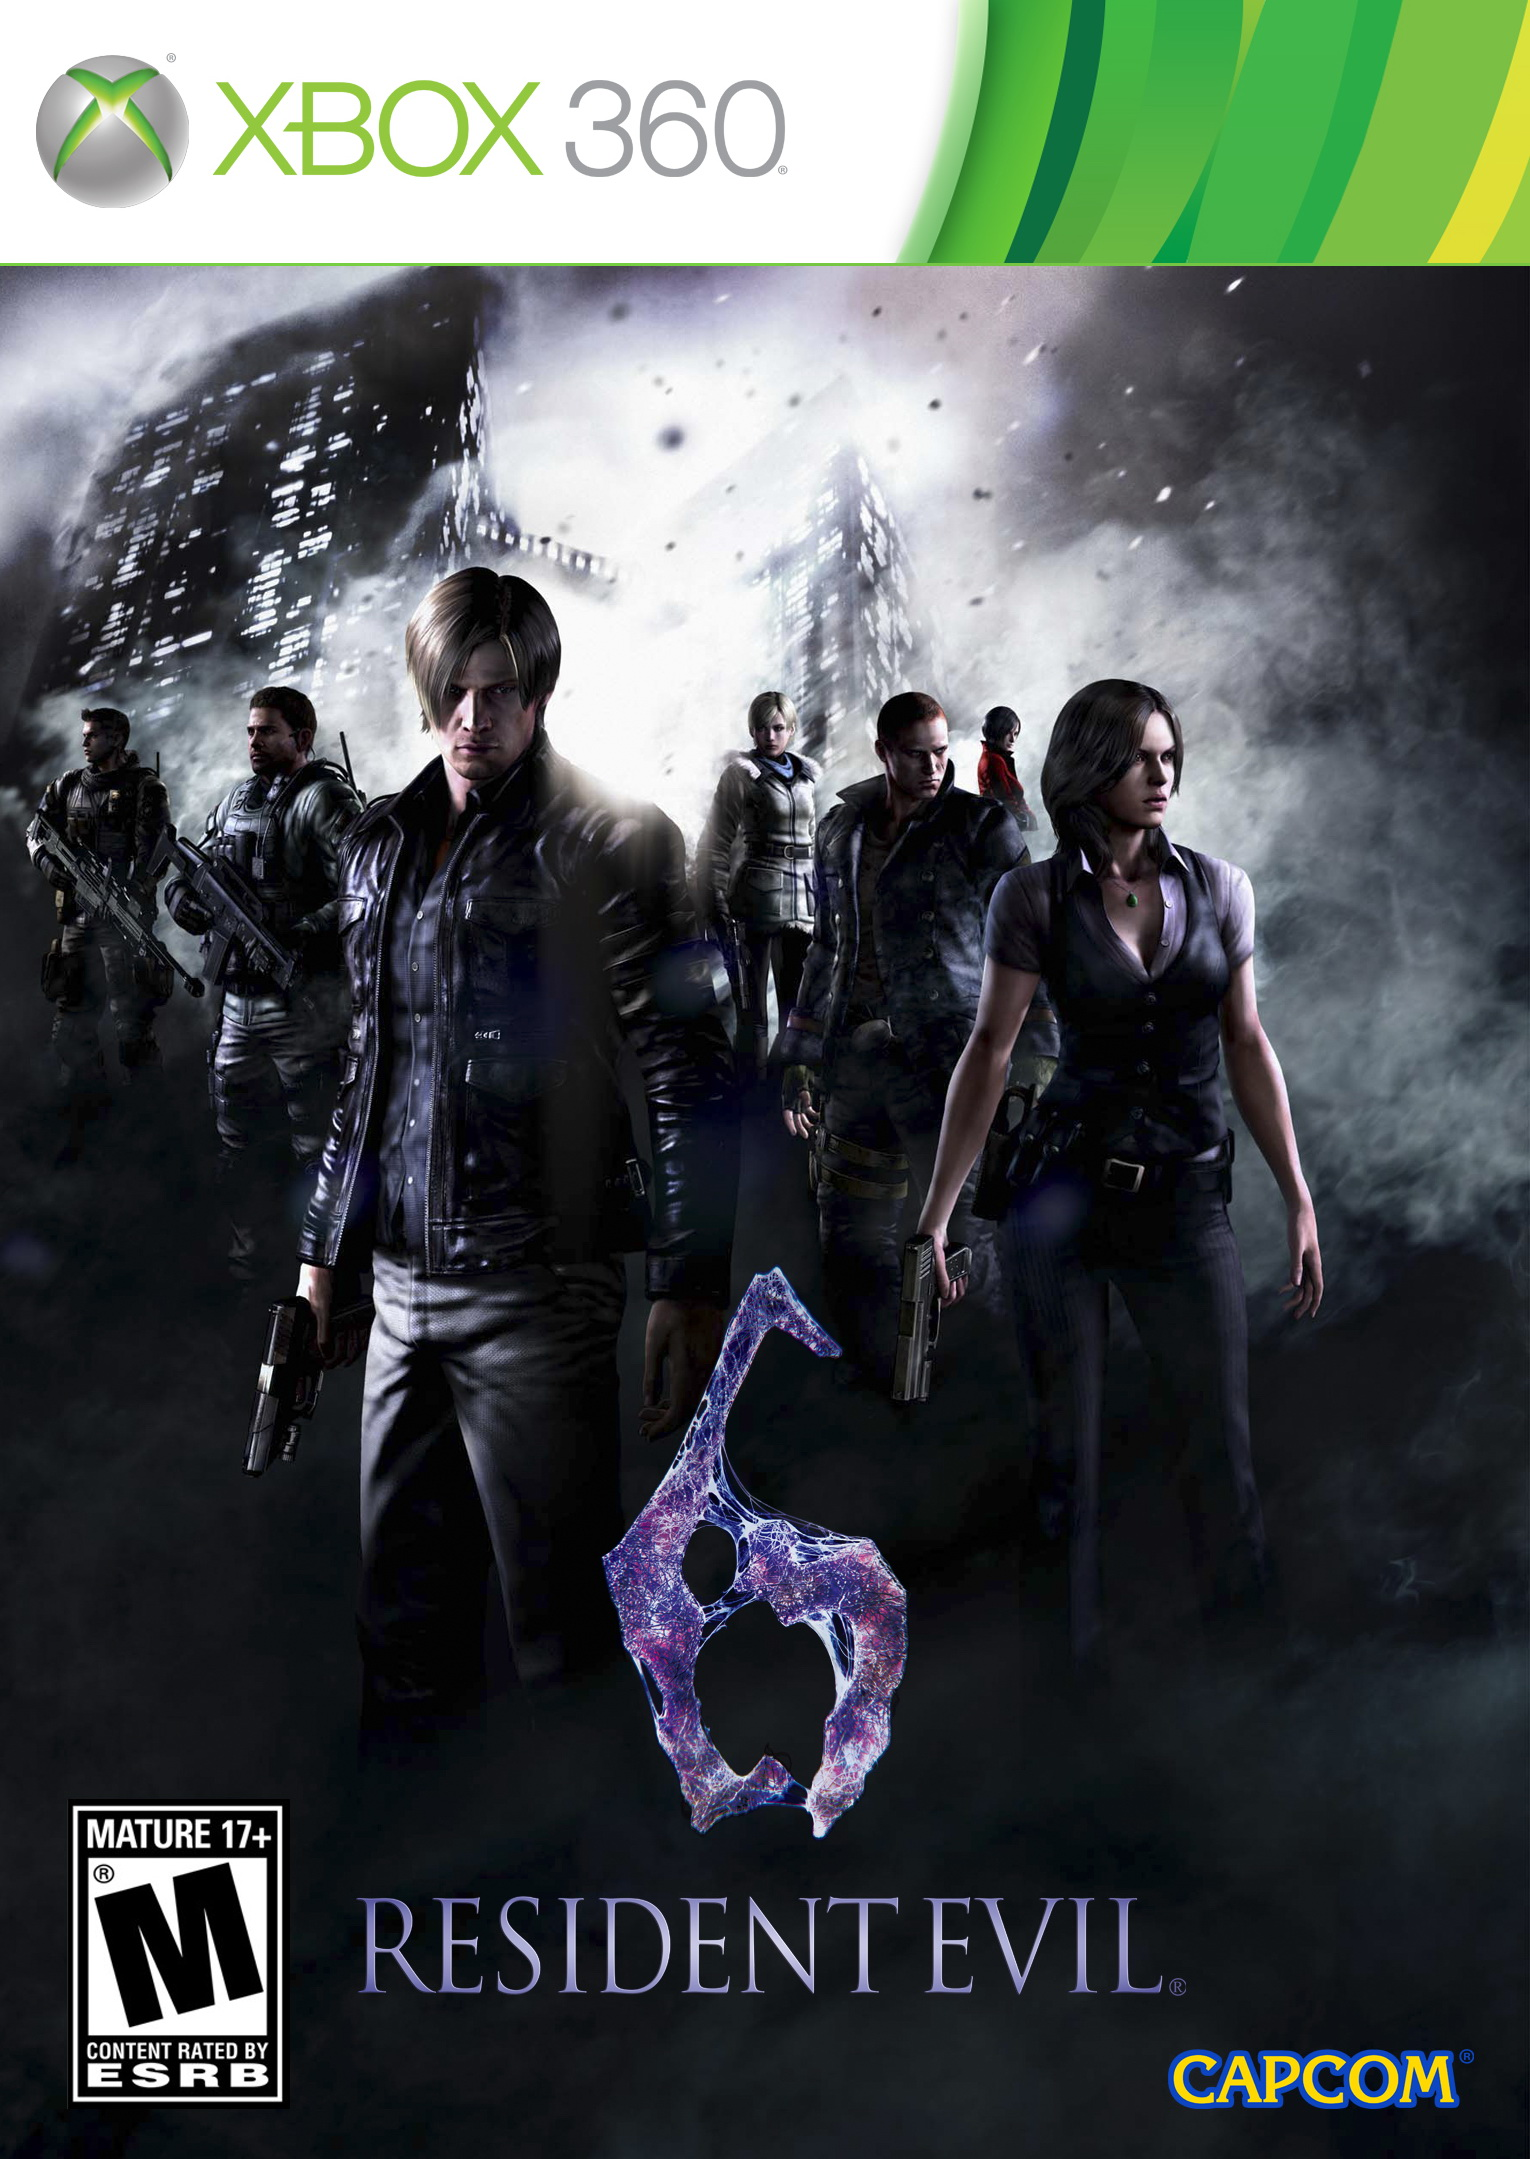 Скачать Resident Evil 6 Steam Co-op Crack 2013 / English торрент.